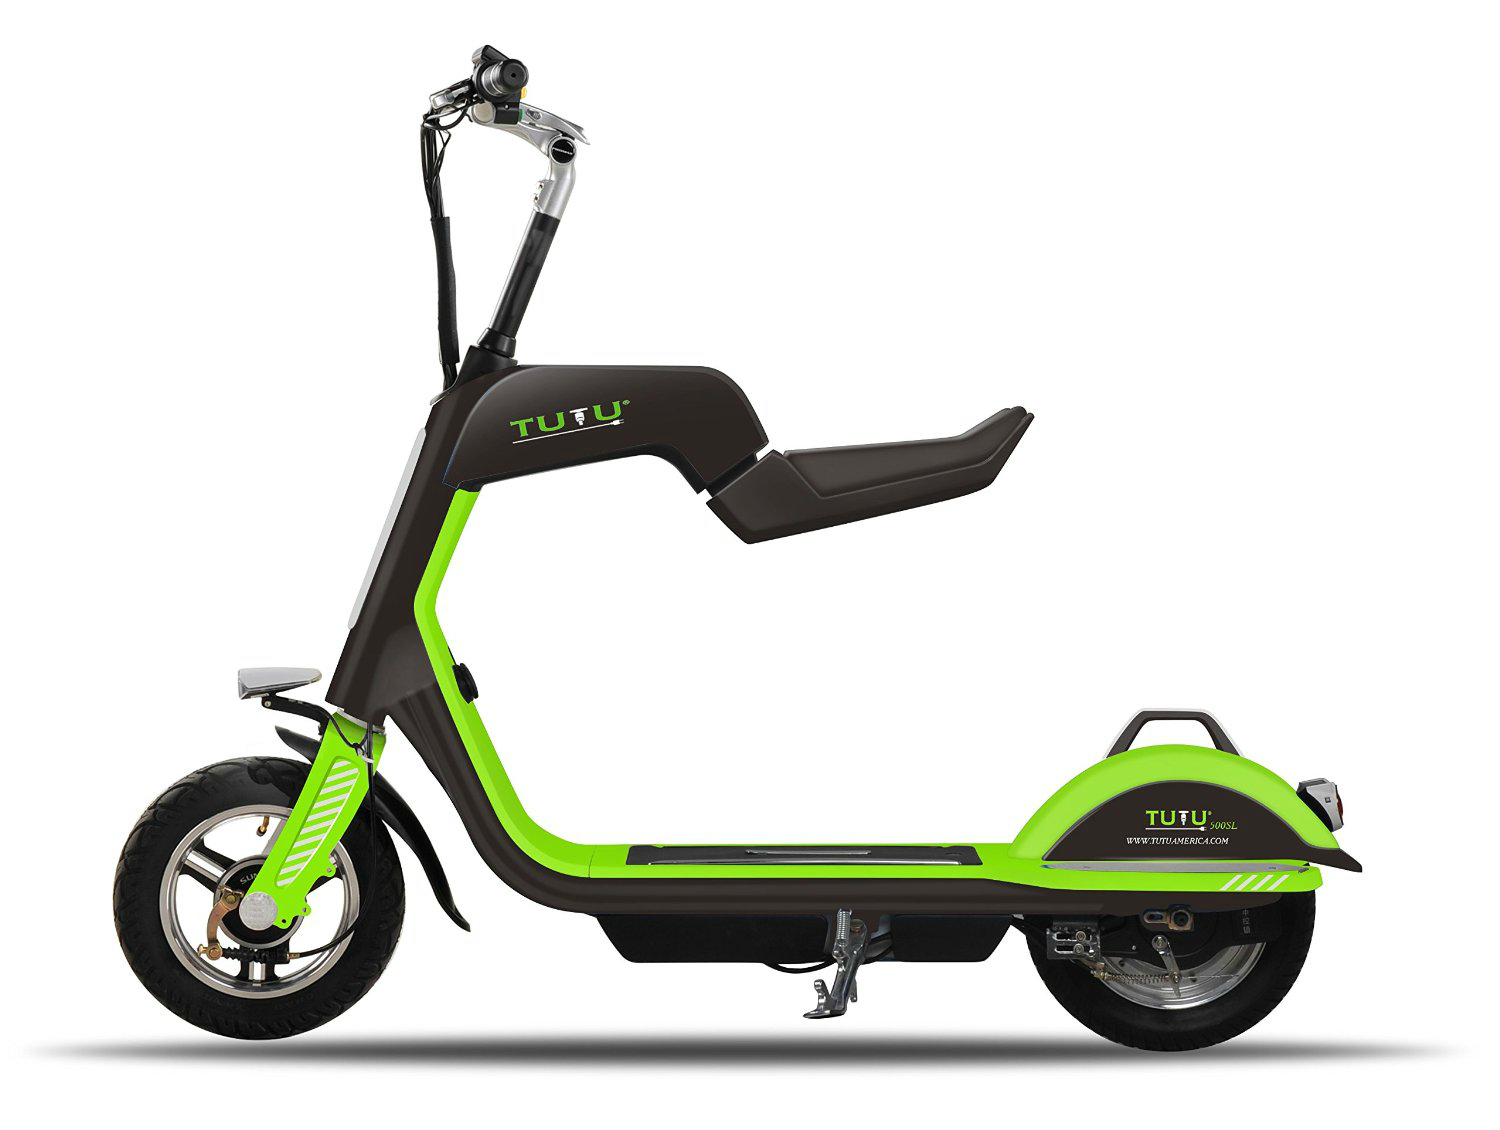 tutu electric scooter the sl350 is tutu much gadgetnutz. Black Bedroom Furniture Sets. Home Design Ideas